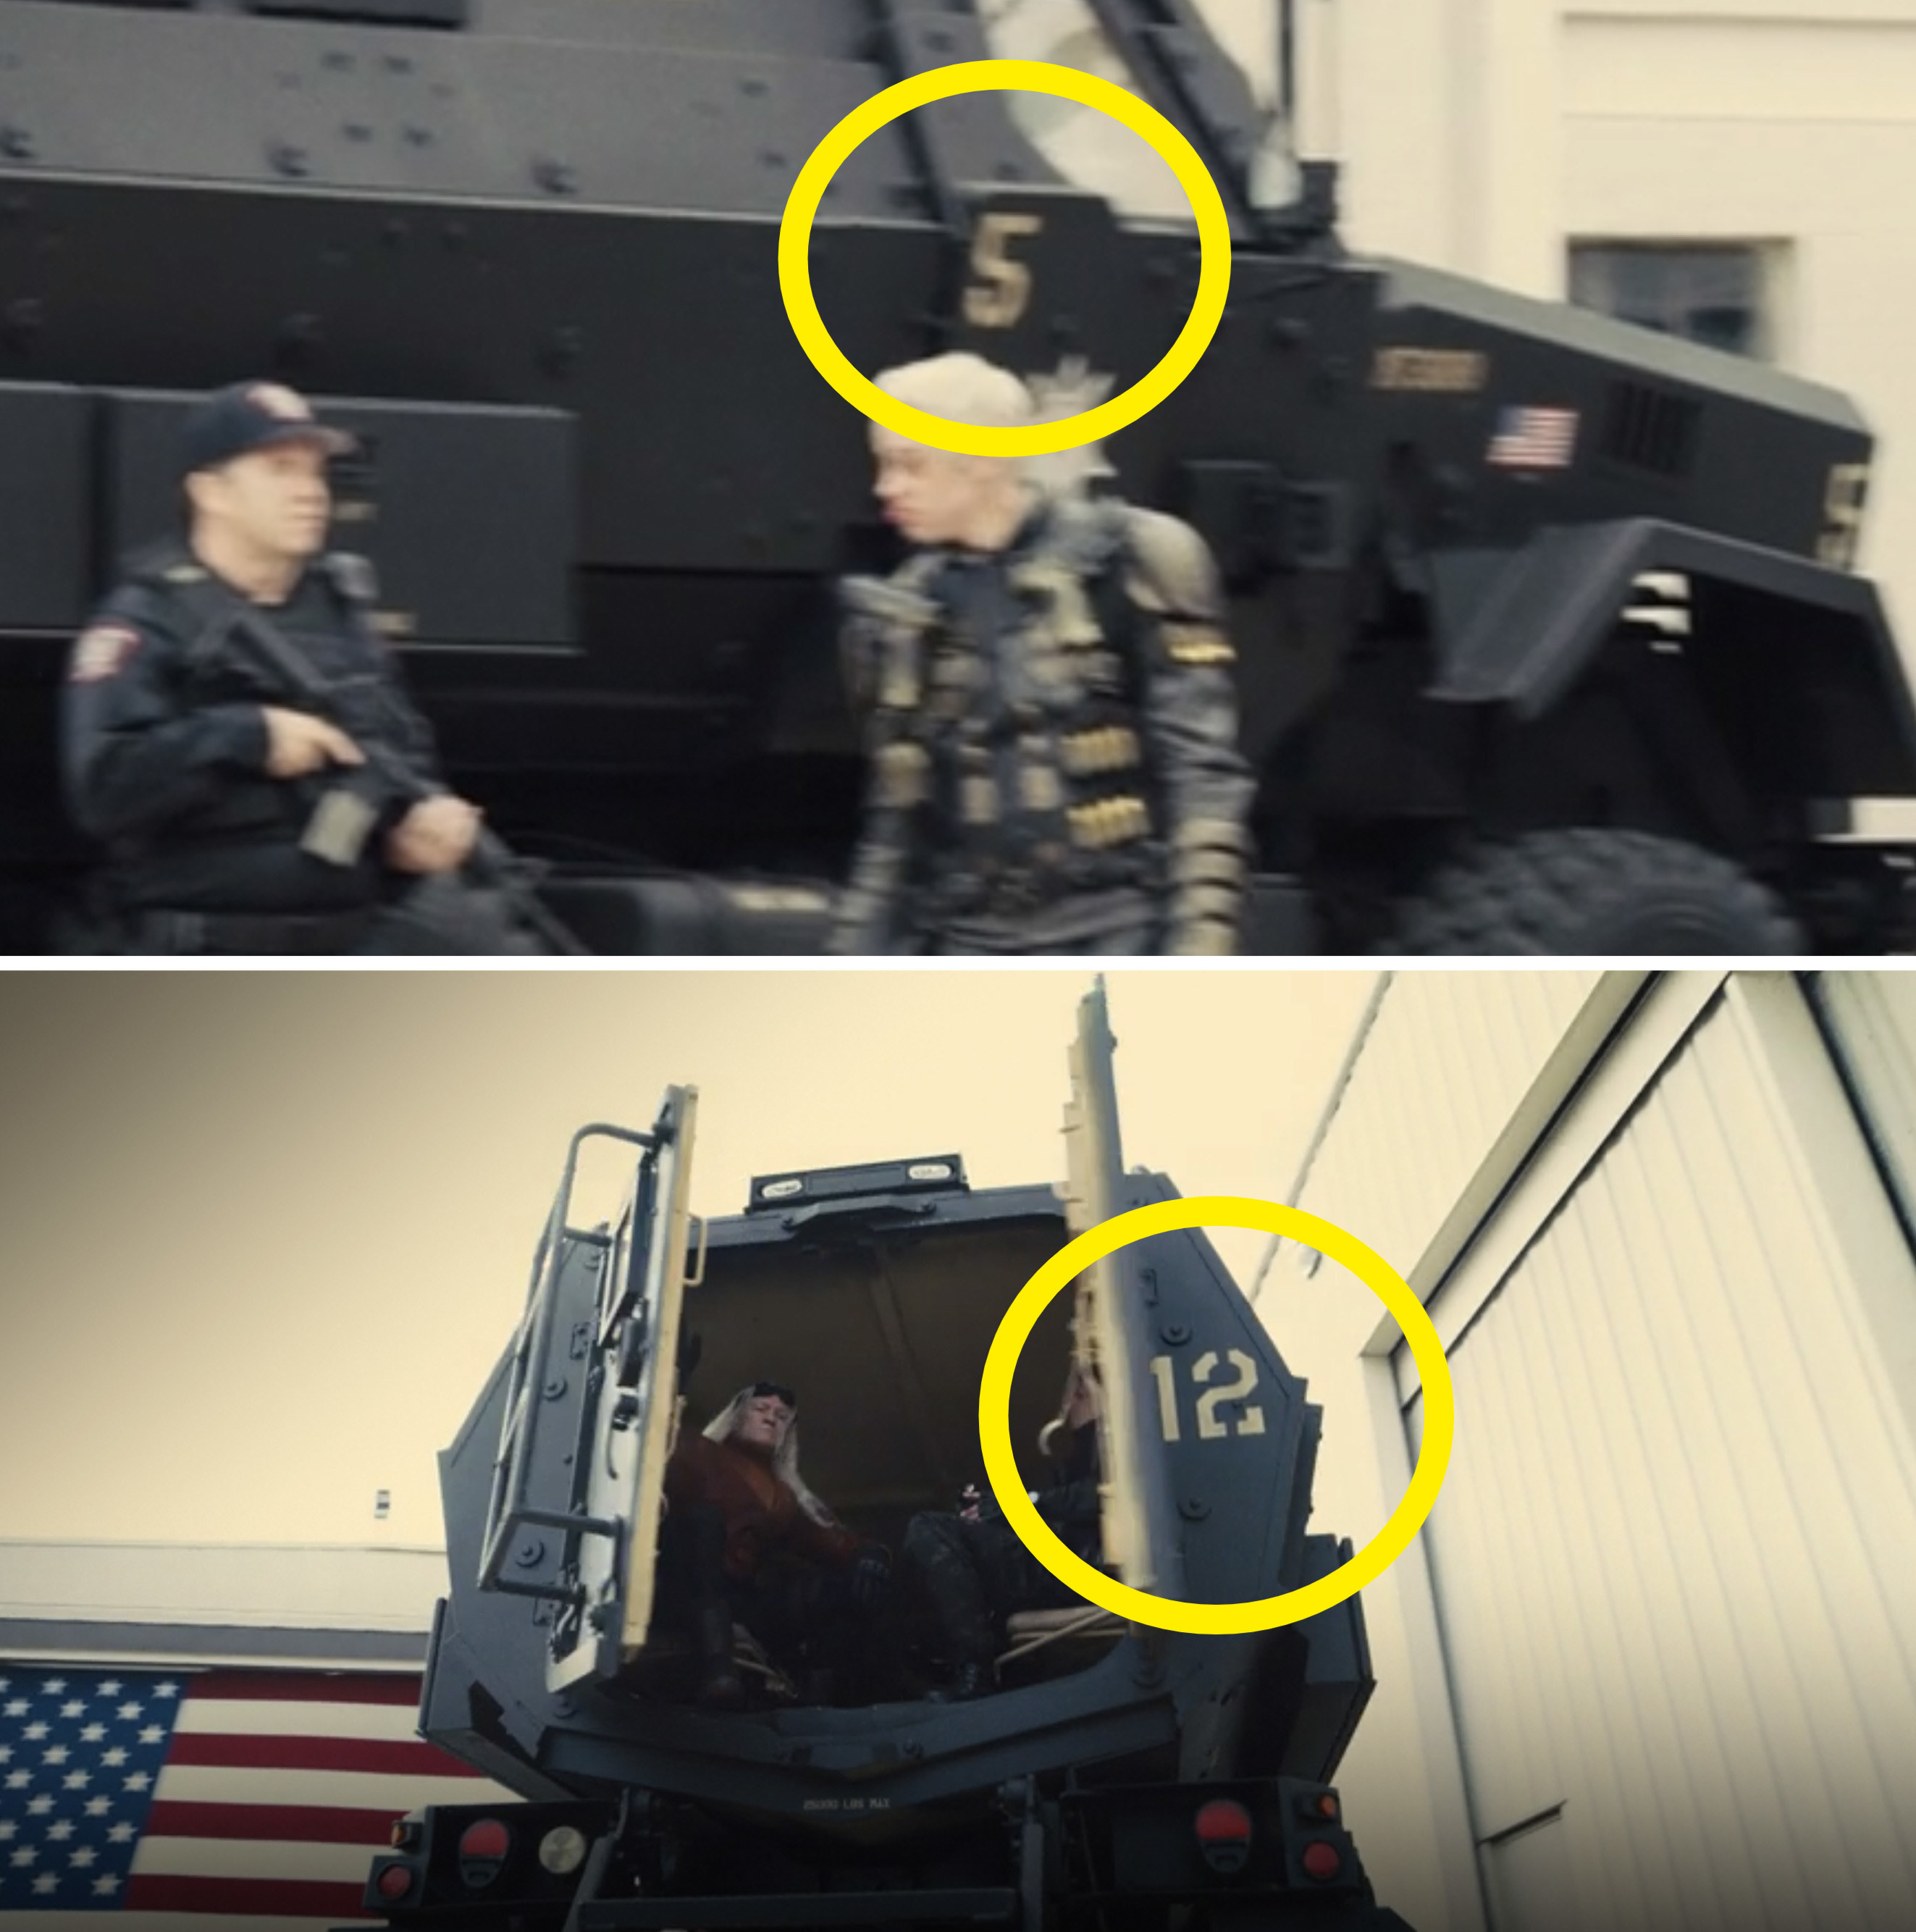 """A close-up of the numbers """"5"""" and """"12"""" on trucks"""